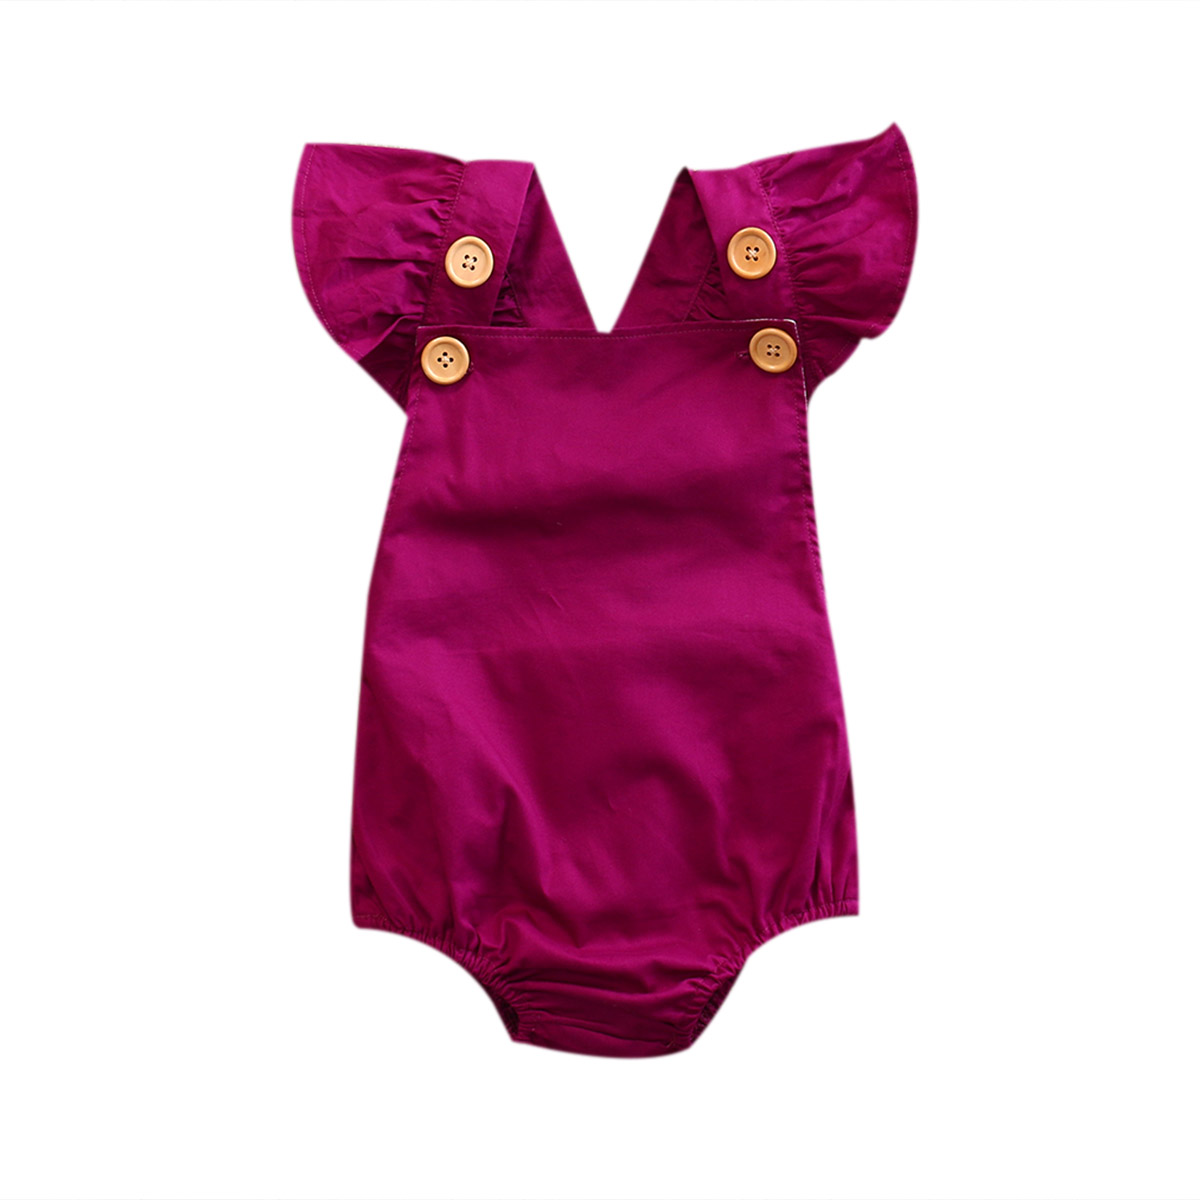 Pudcoco Cotton Infant Baby Girl Backless   Romper   Jumpsuit Sunsuit Sleeveless One-Pieces Outfits Clothes